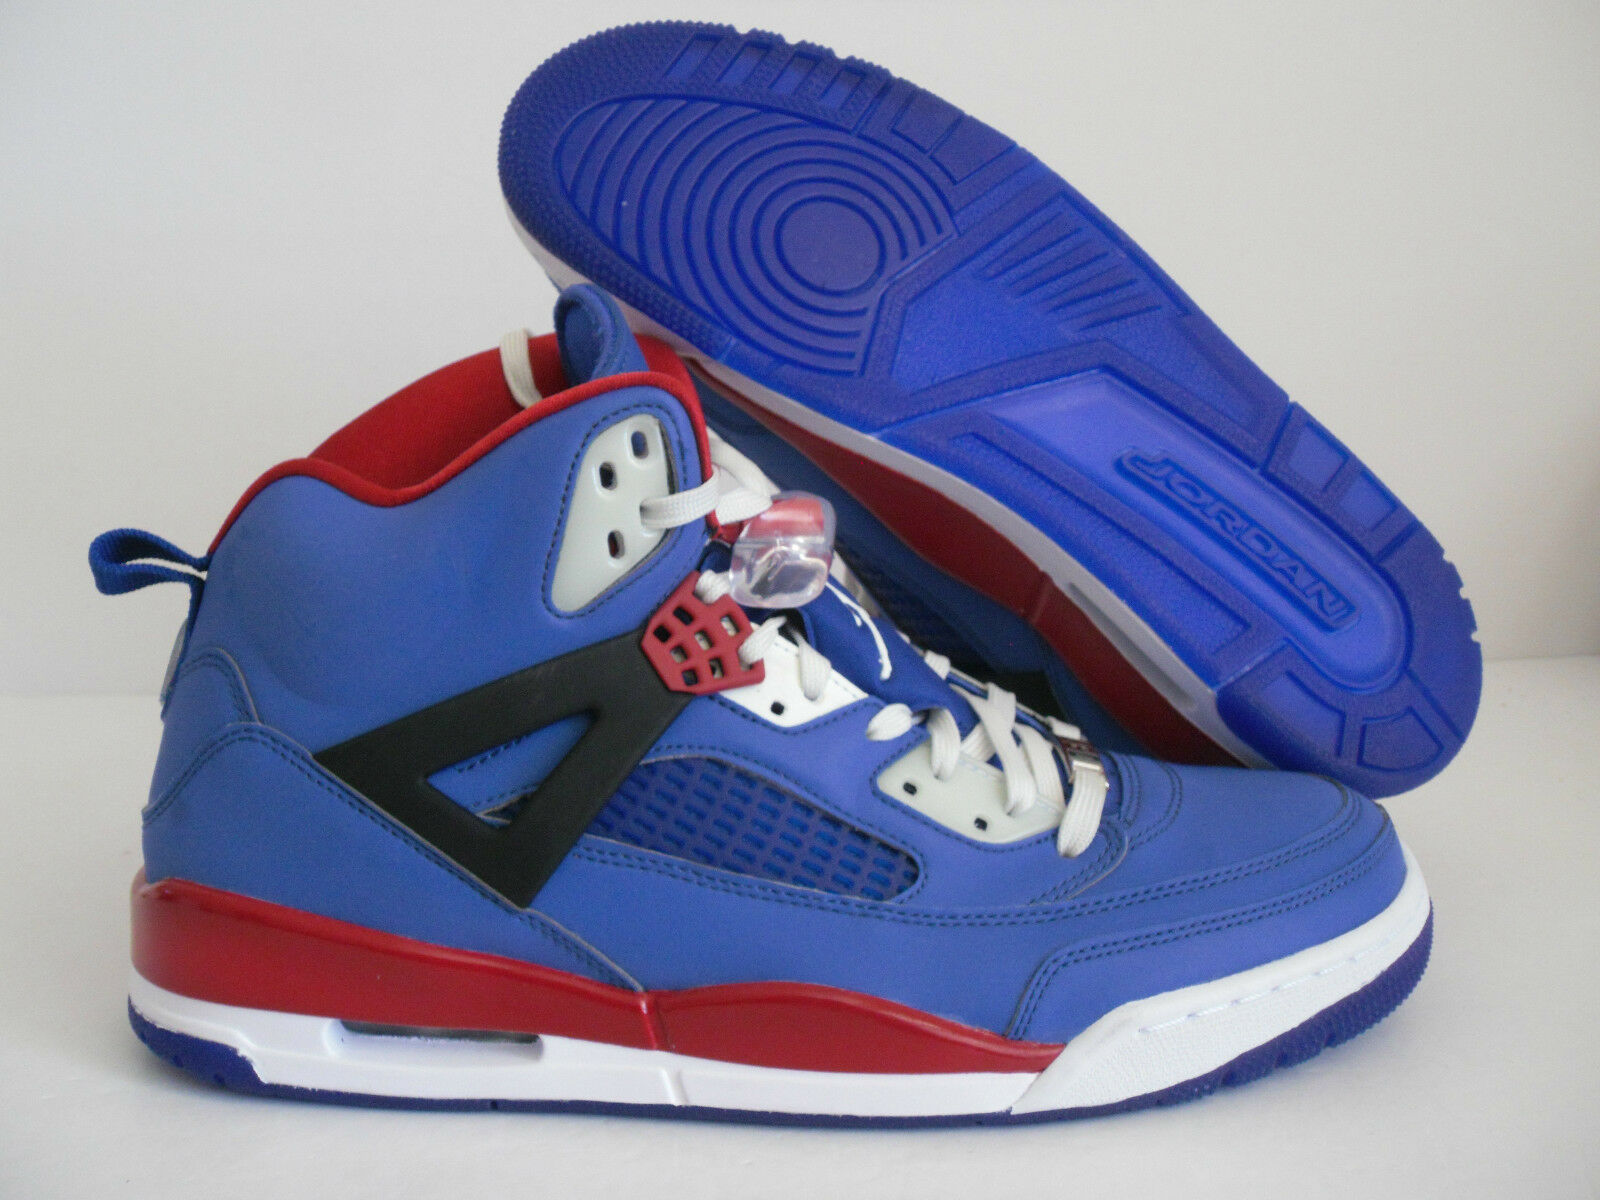 NIKE AIR JORDAN SPIZIKE iD [605236-995] BLUE-RED-WHITE 3M SZ 11.5 [605236-995] iD f65b7d